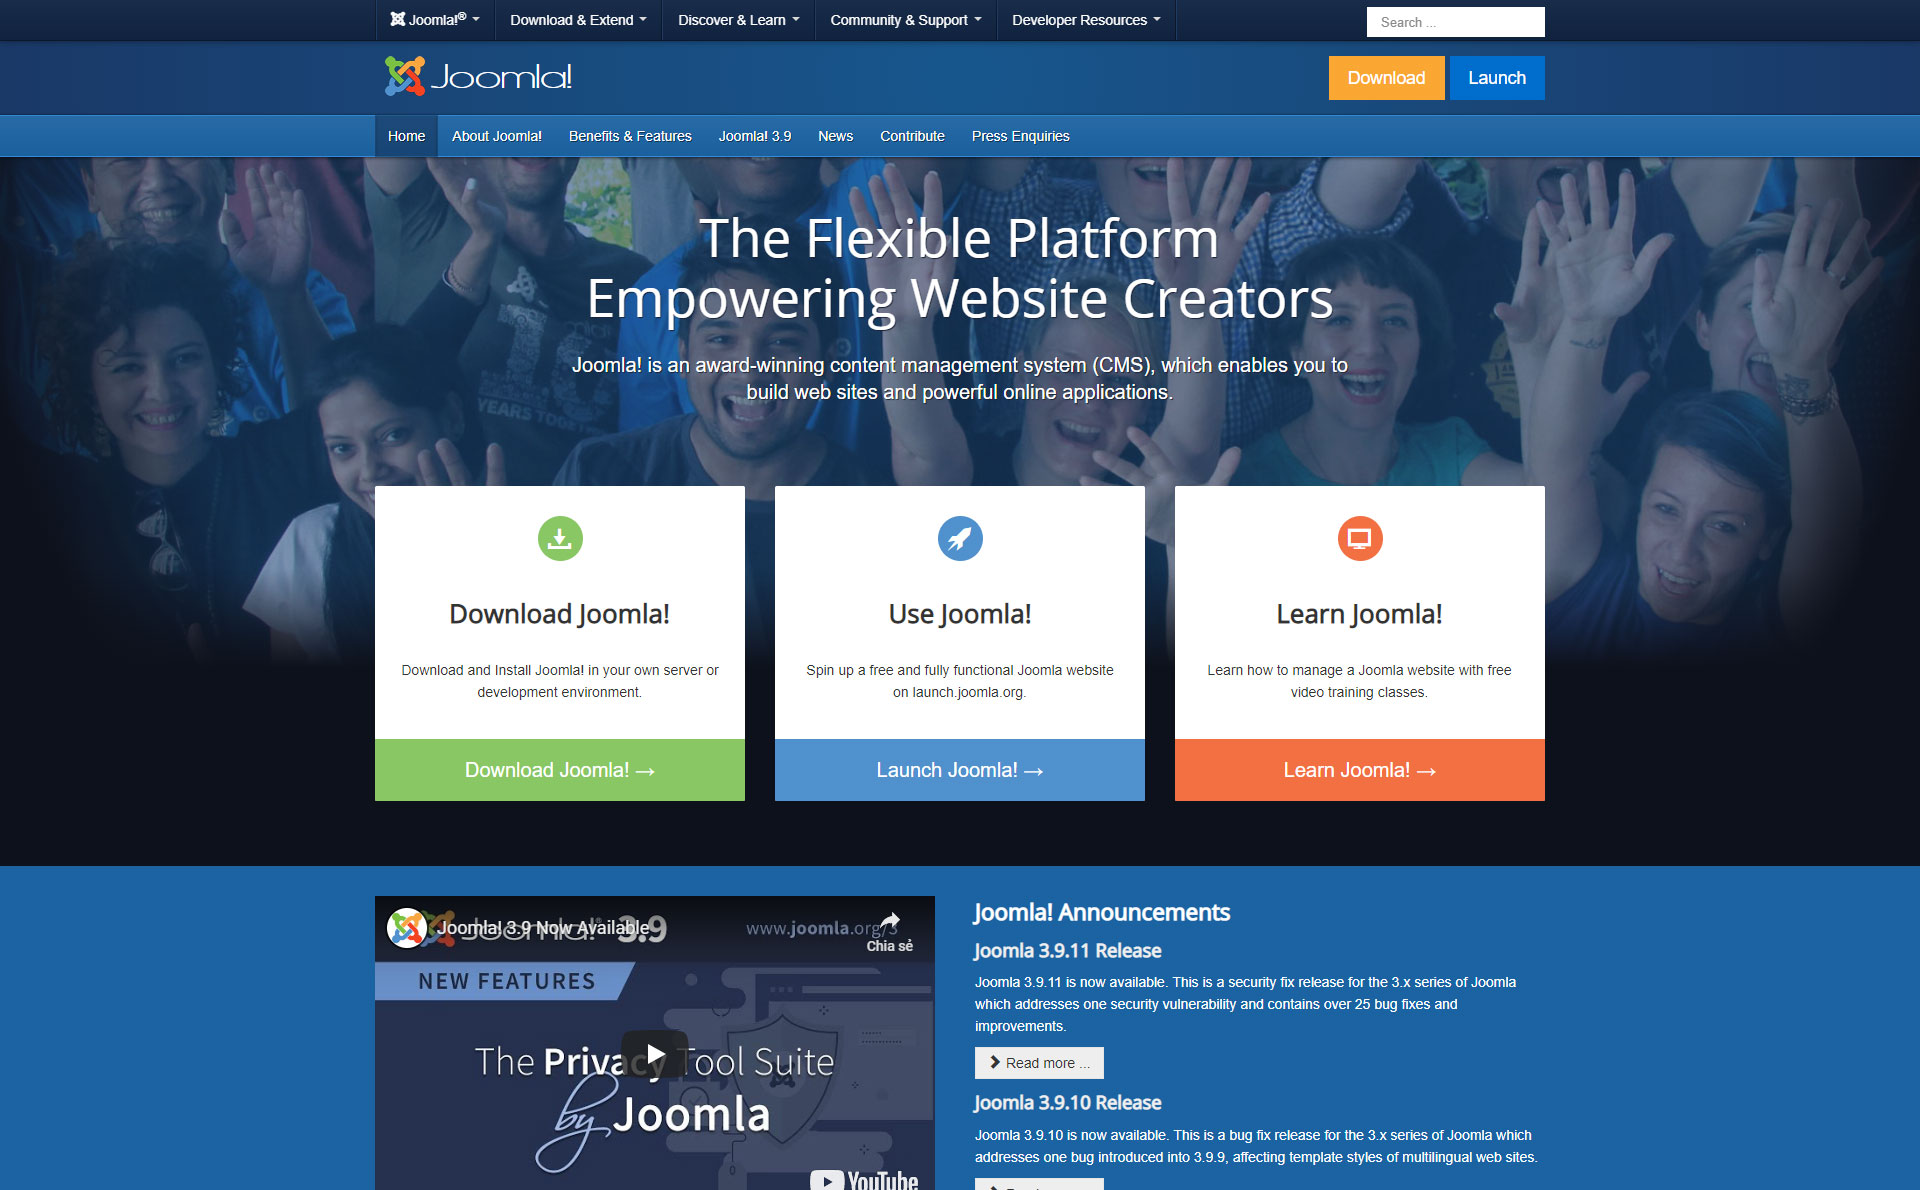 Joomla! - Best Free Content Management System